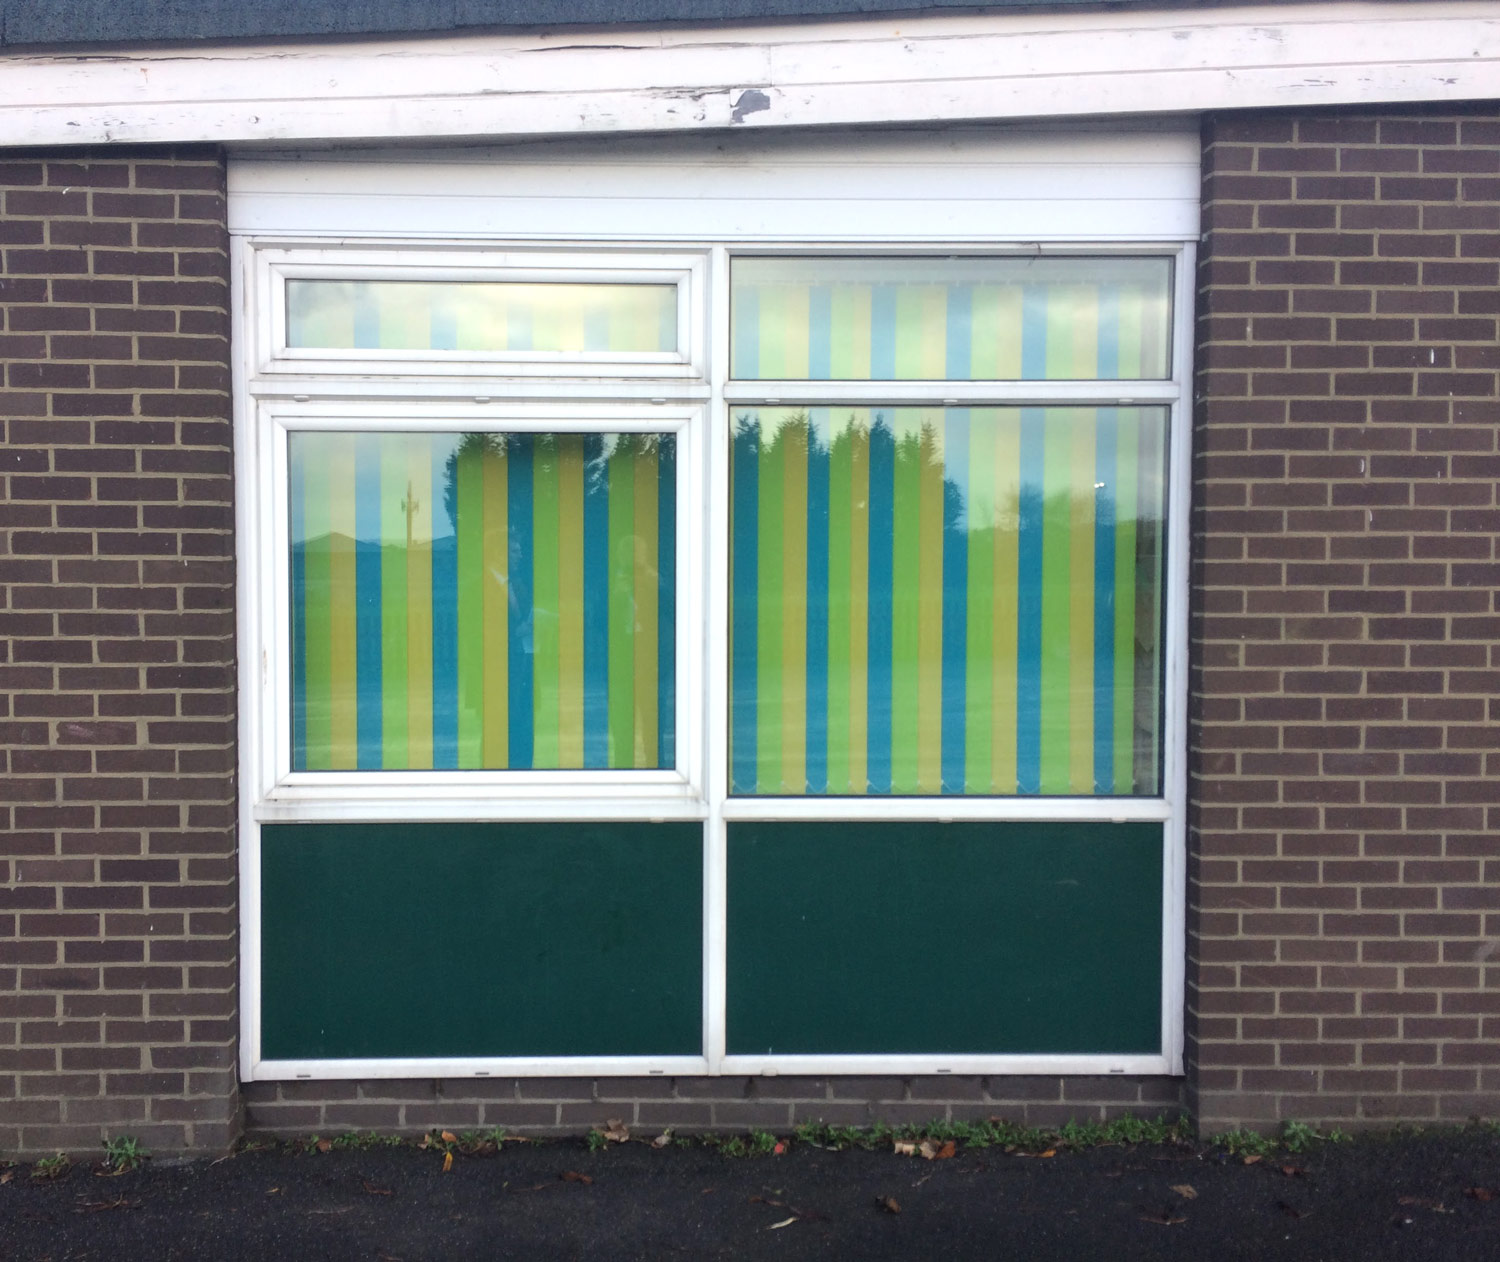 BEFORE: The window coverings are green